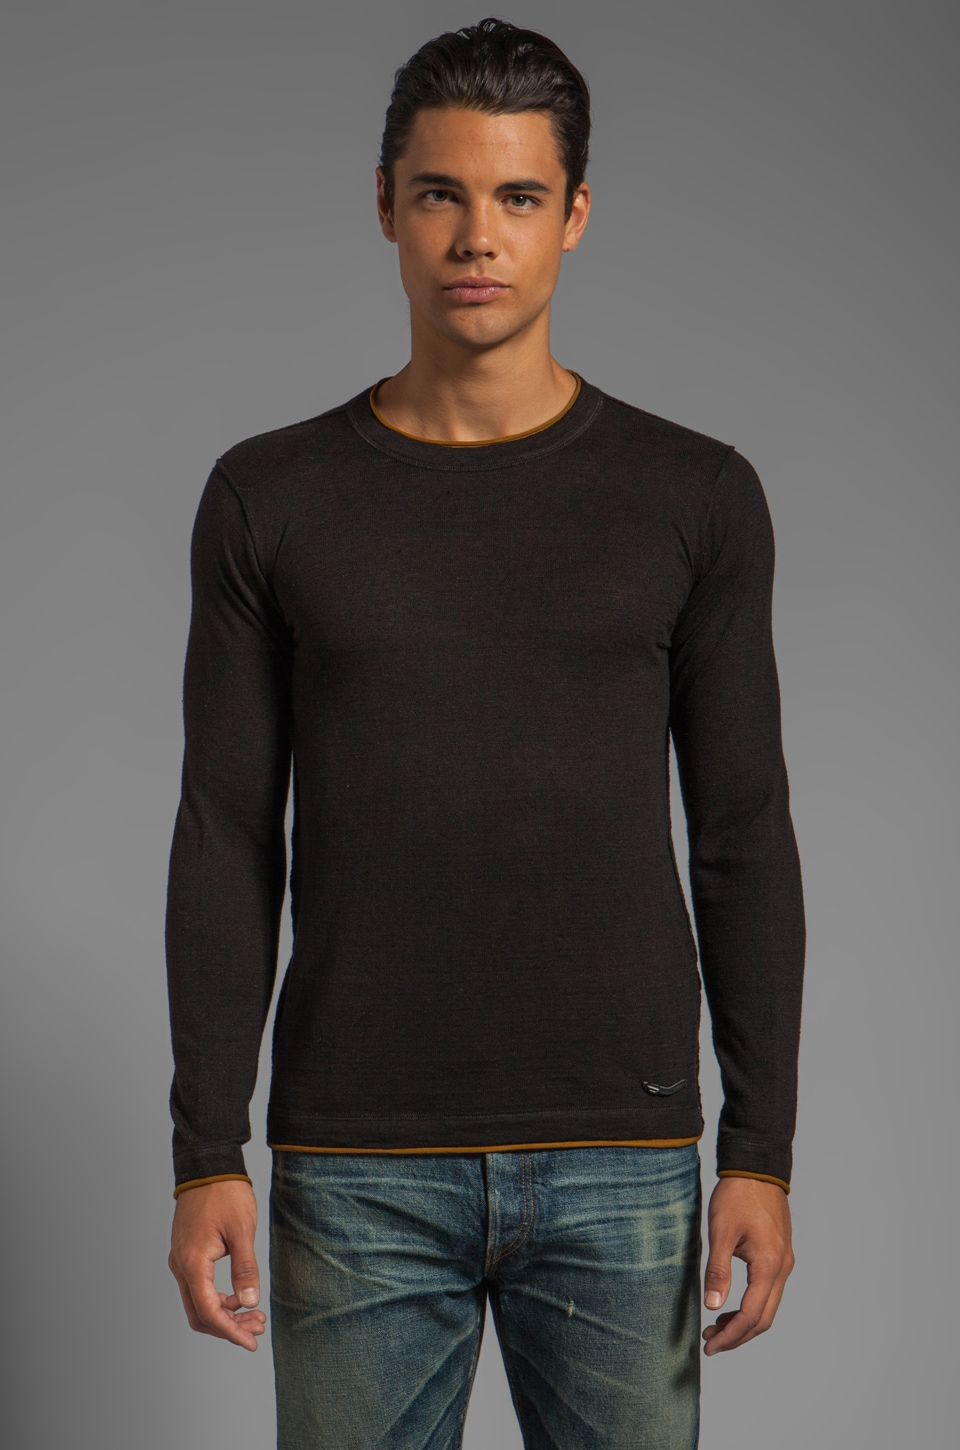 Diesel Ascepio Sweater in Black